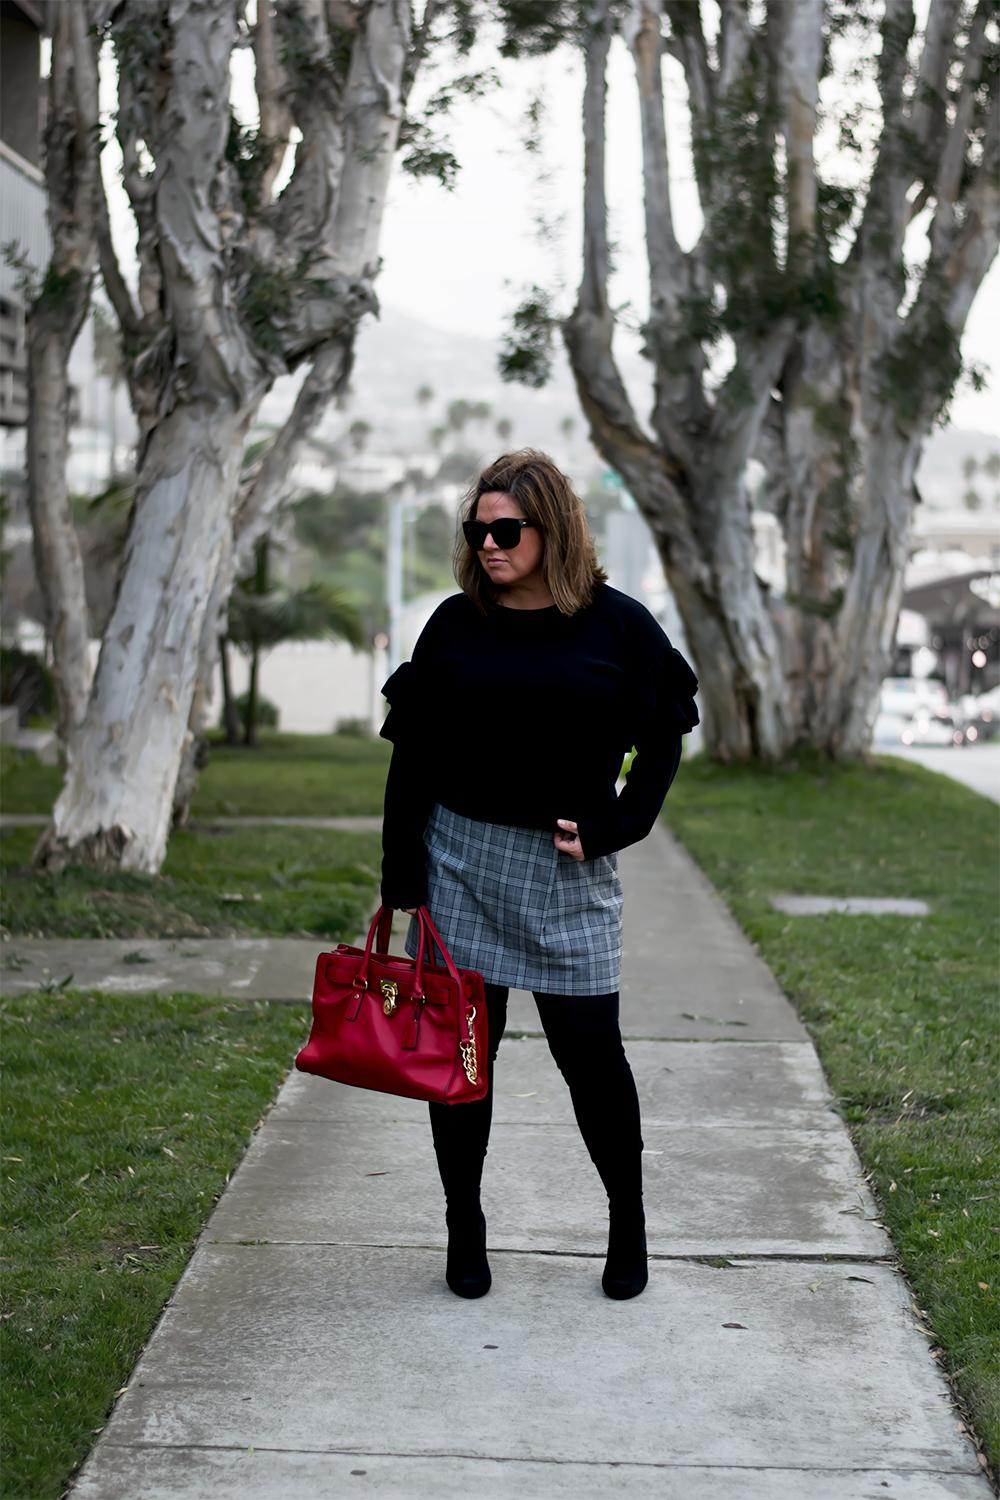 Hers-and-His-Casual-Weekend-Outfits-Top-Blogger-Outfits-for-2017-Barefoot-in-LA-Fashion-Blog-Style-Ideas-0862